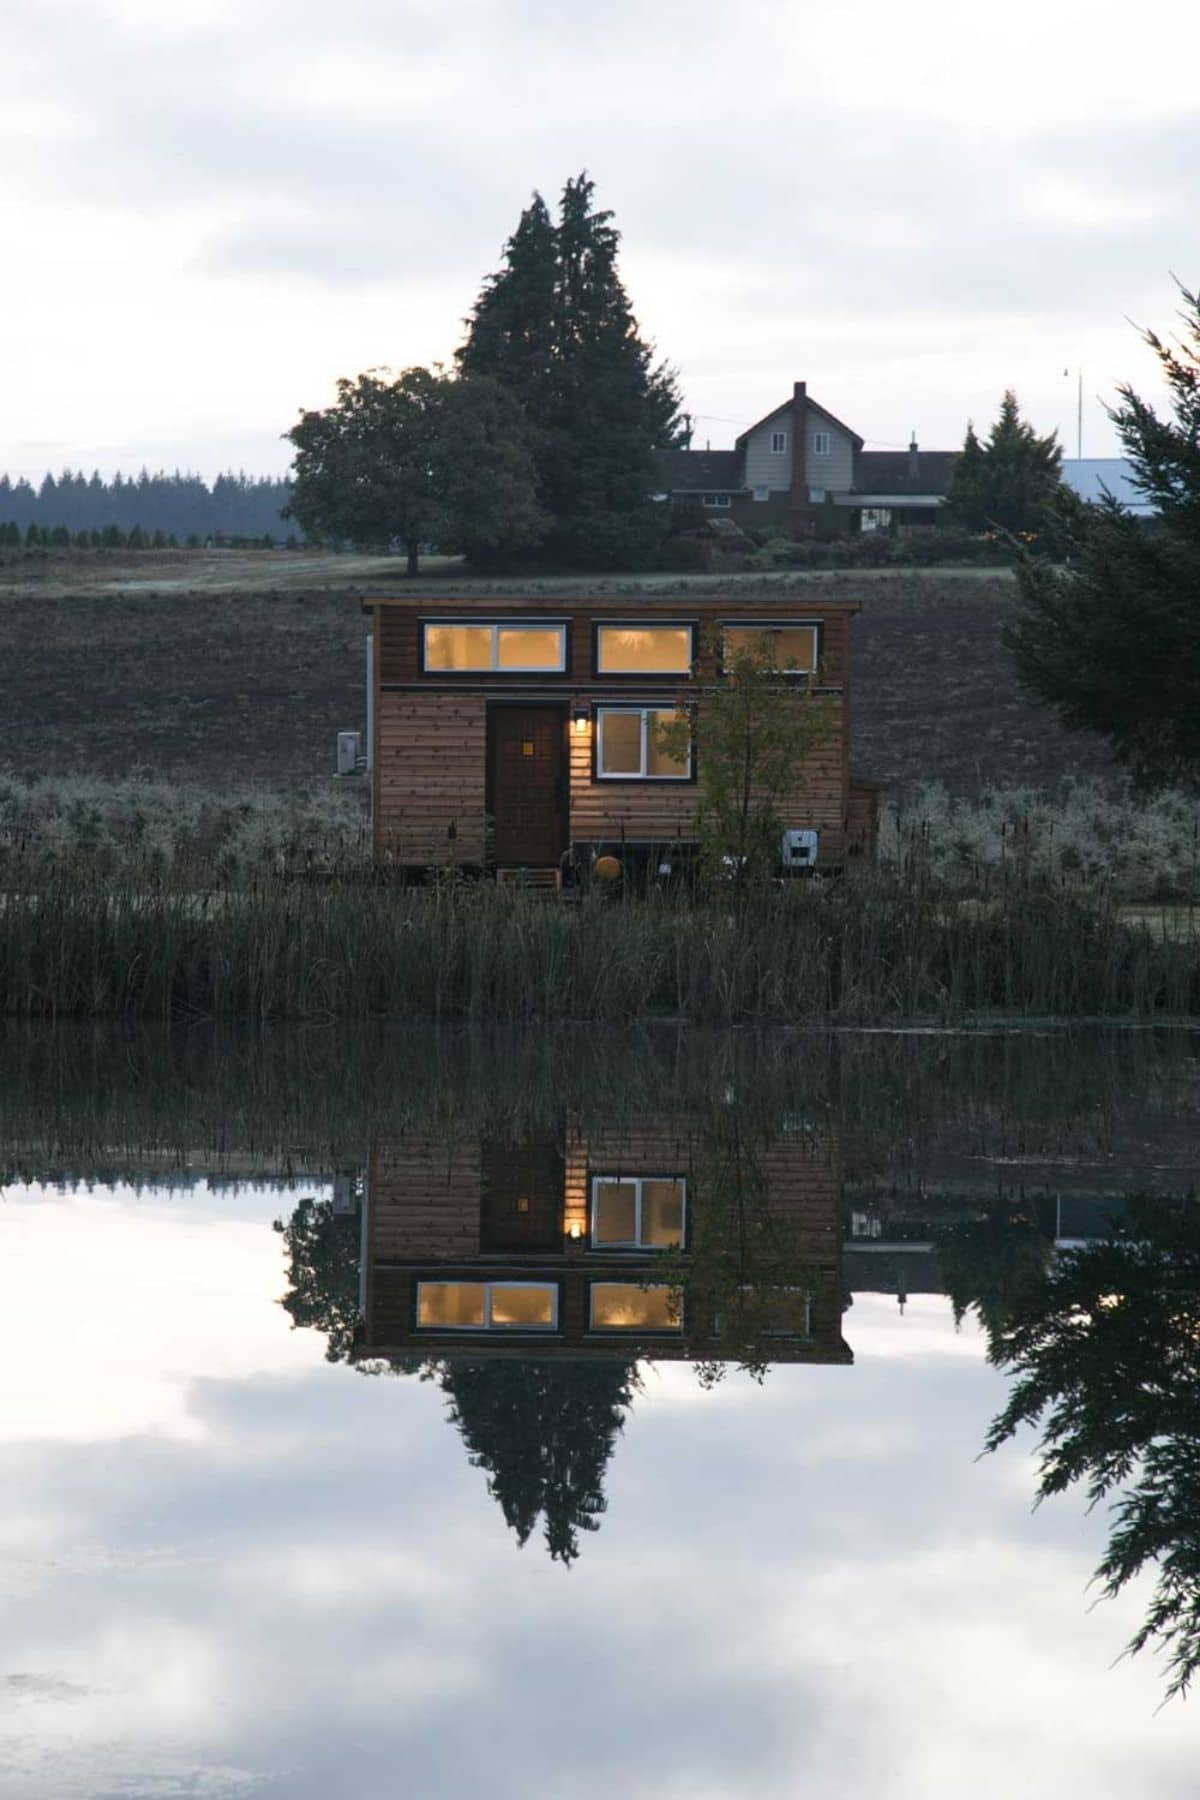 Tiny home reflection on water